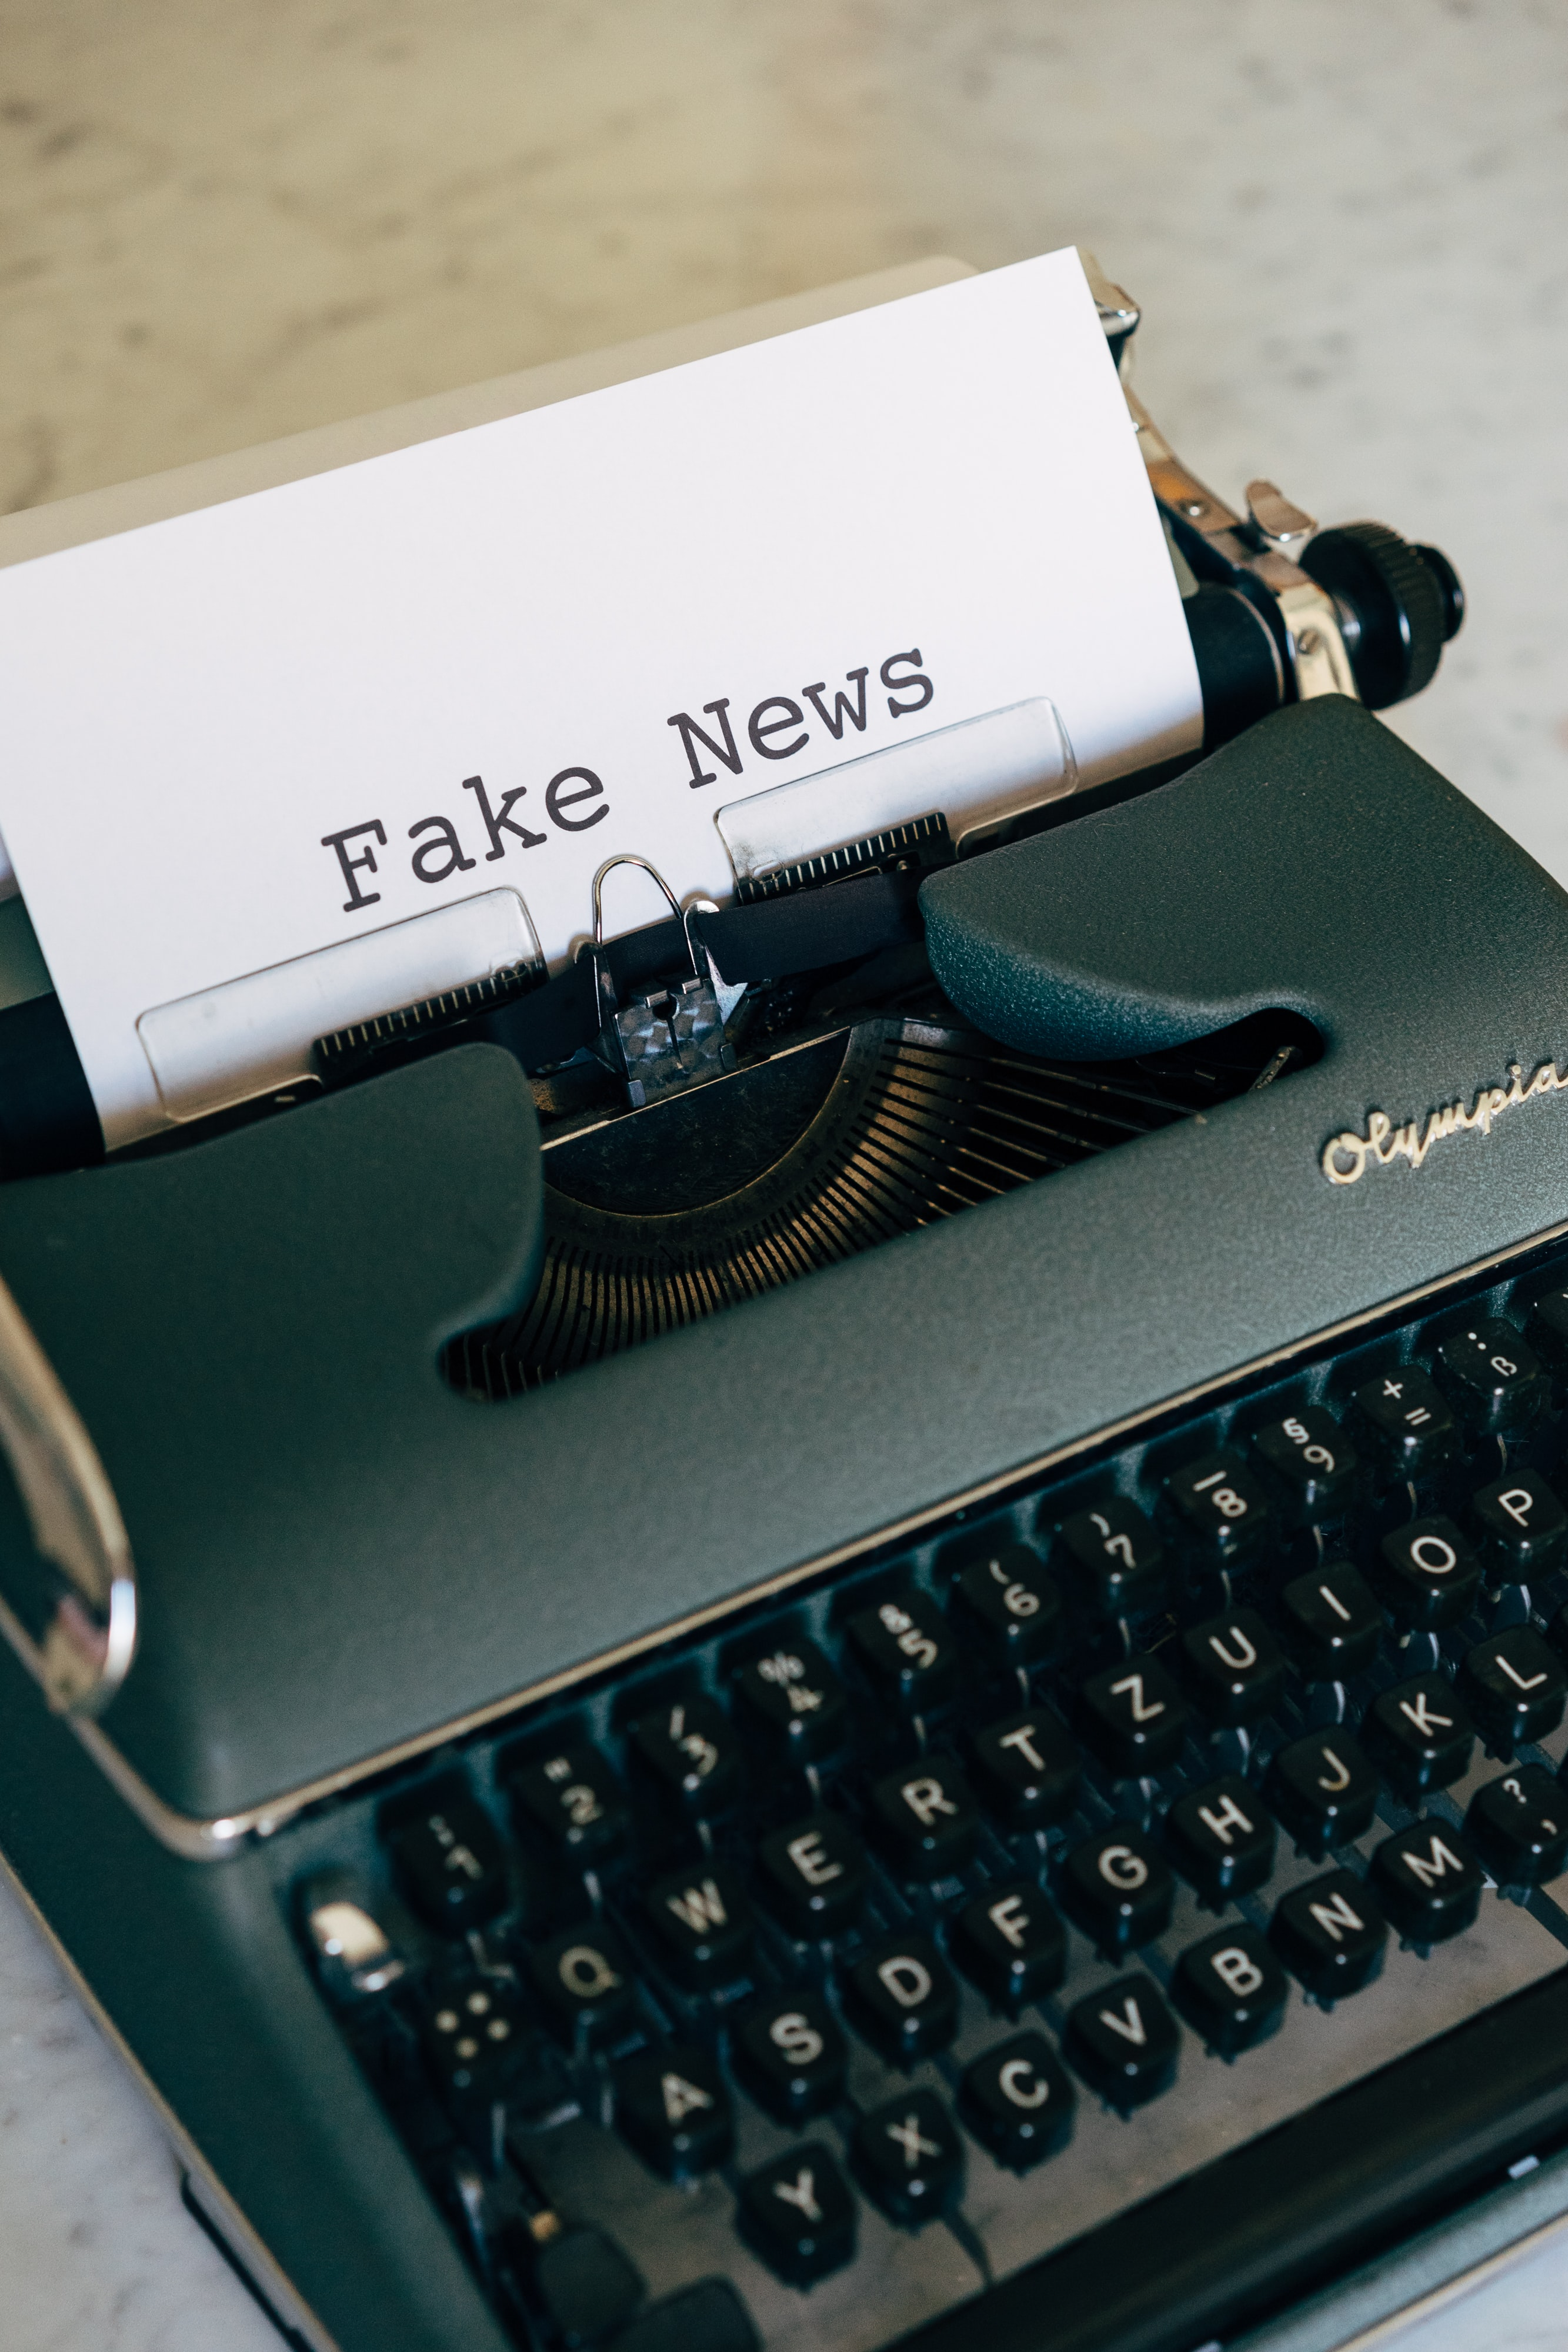 Typewriter typing 'fake news'